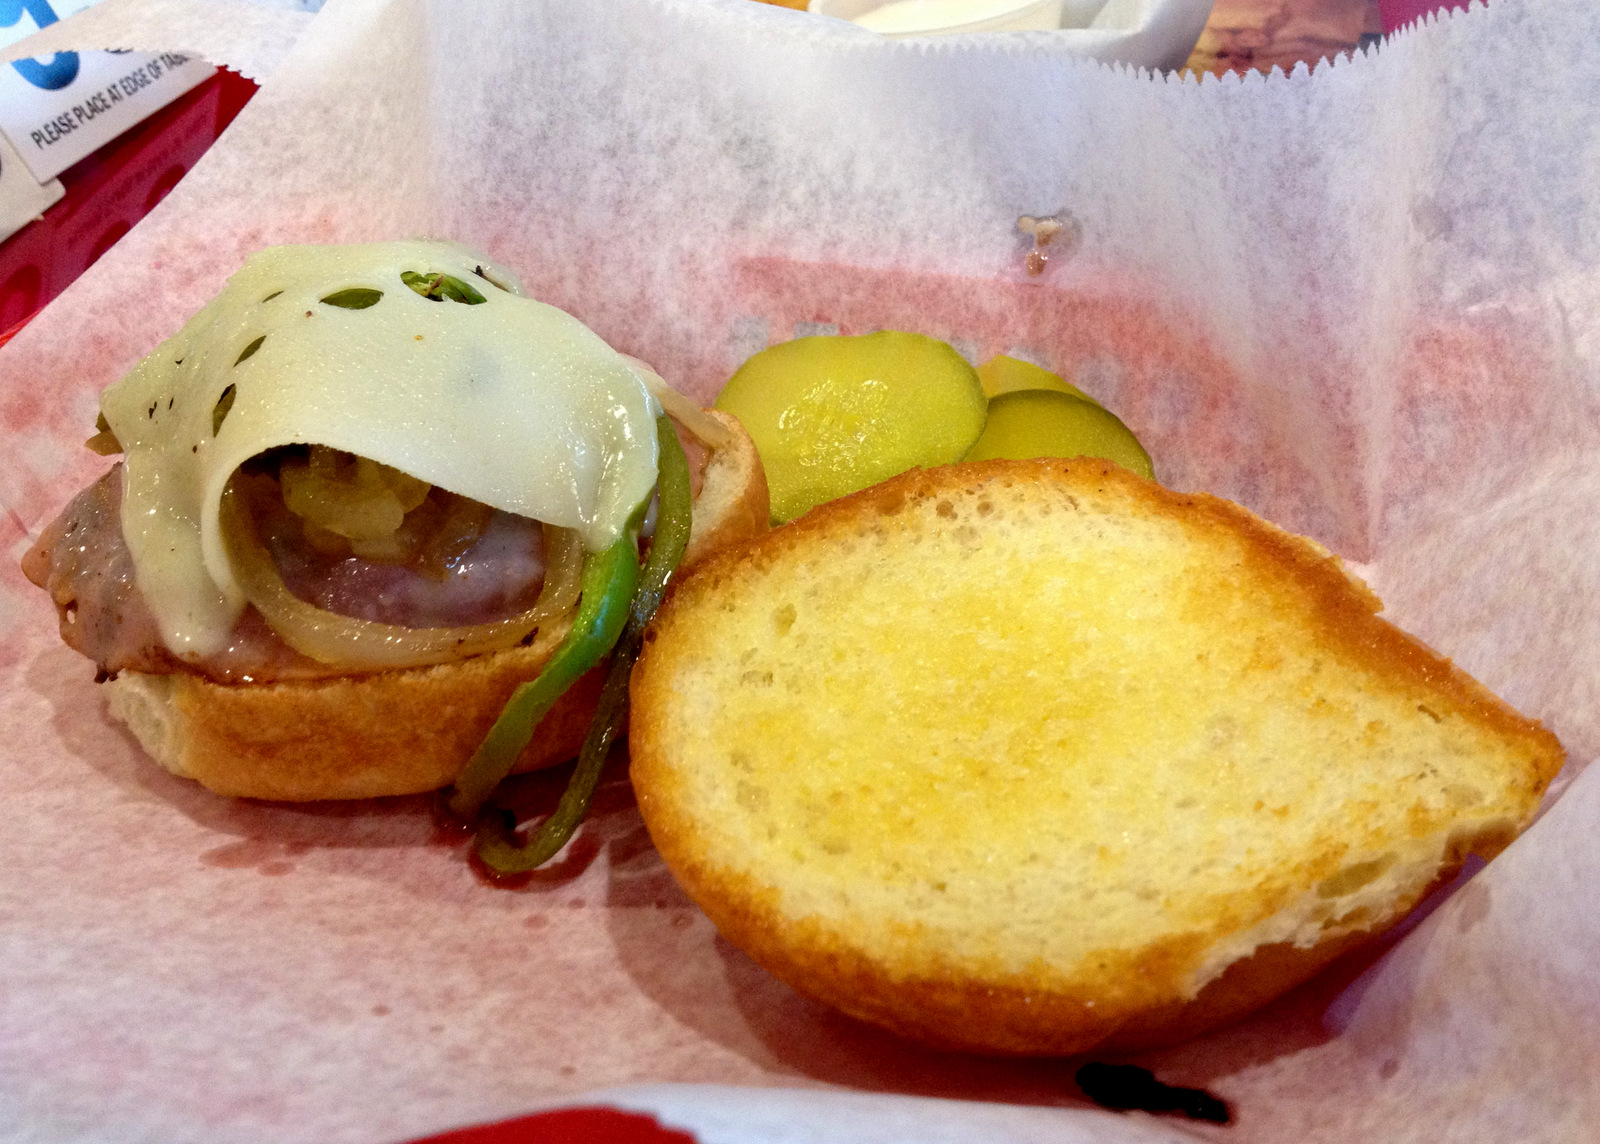 Fred's burger